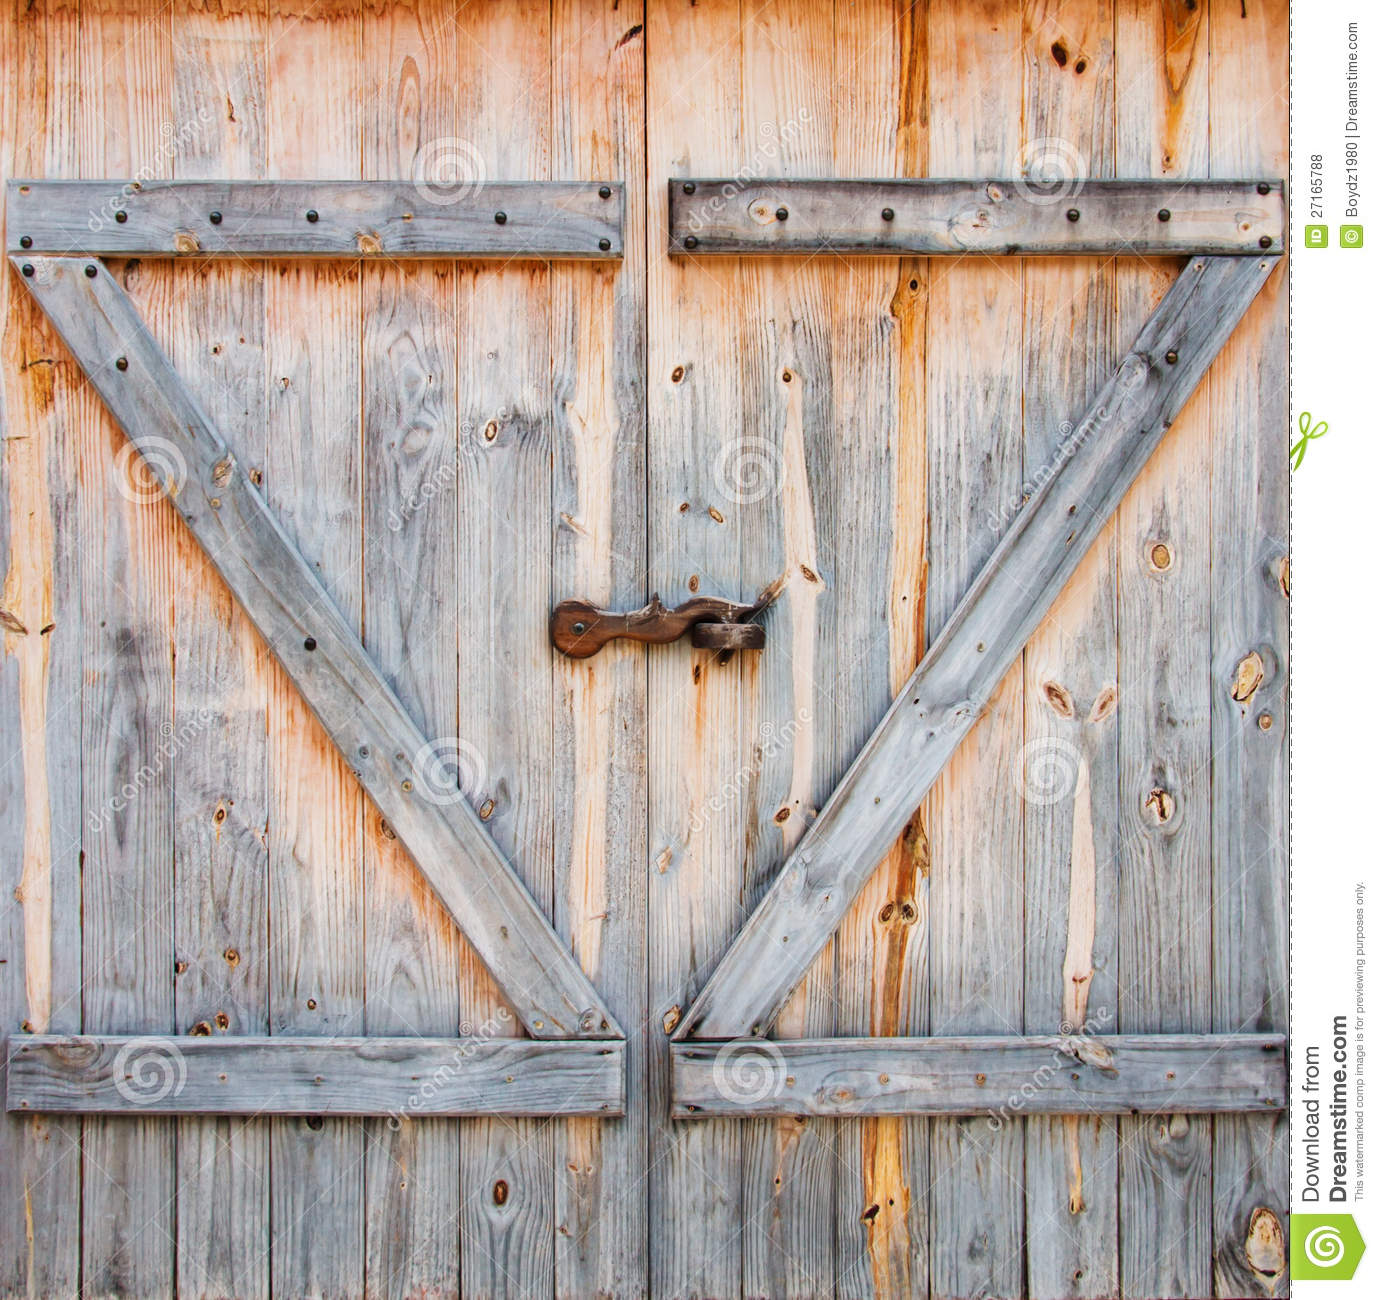 Barn door stock photo image of decor gate front close for Barn door images